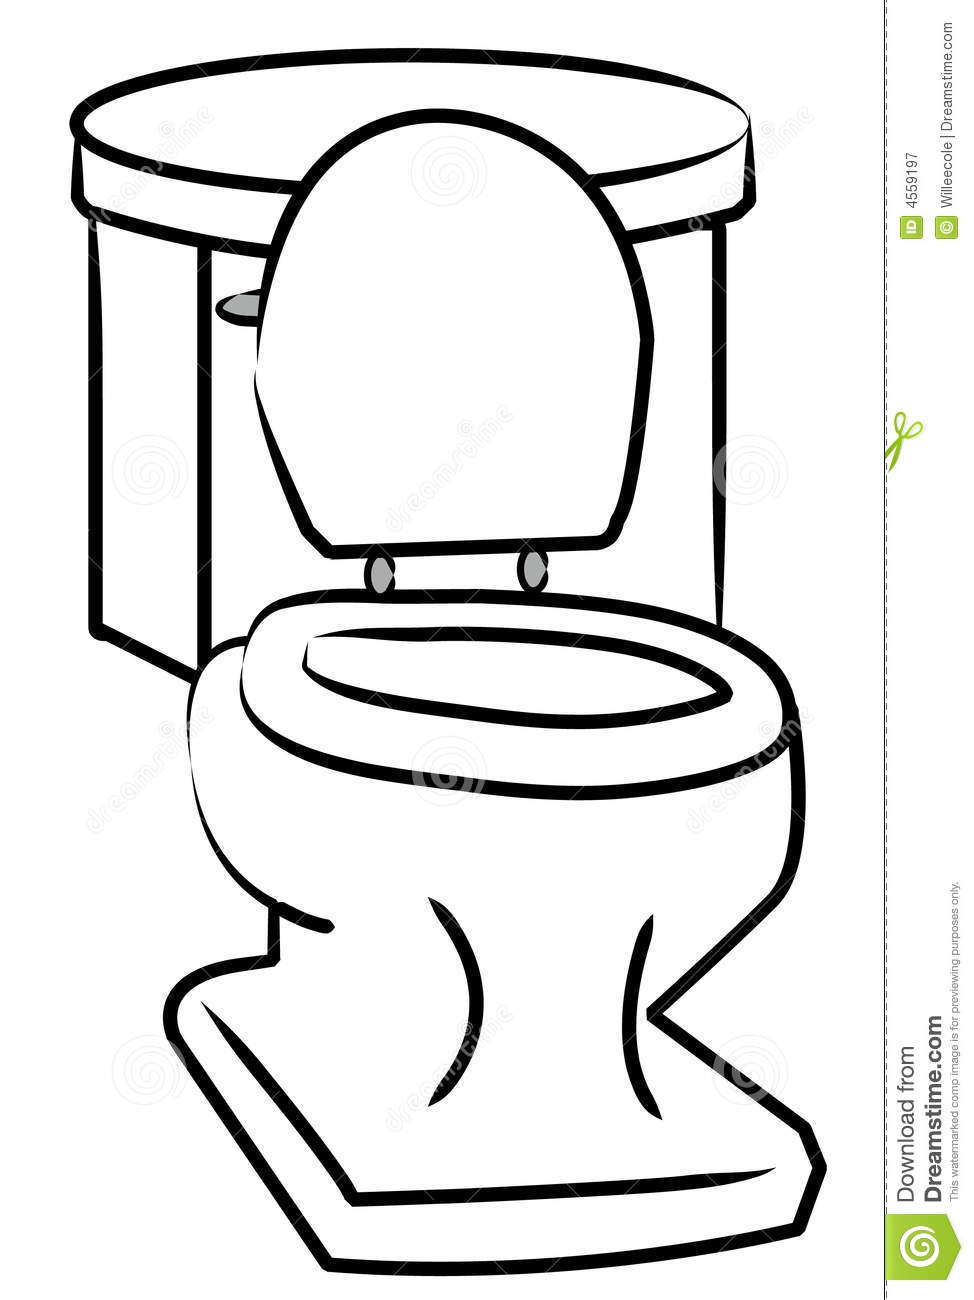 Toilet Seat Clipart Clipart Suggest